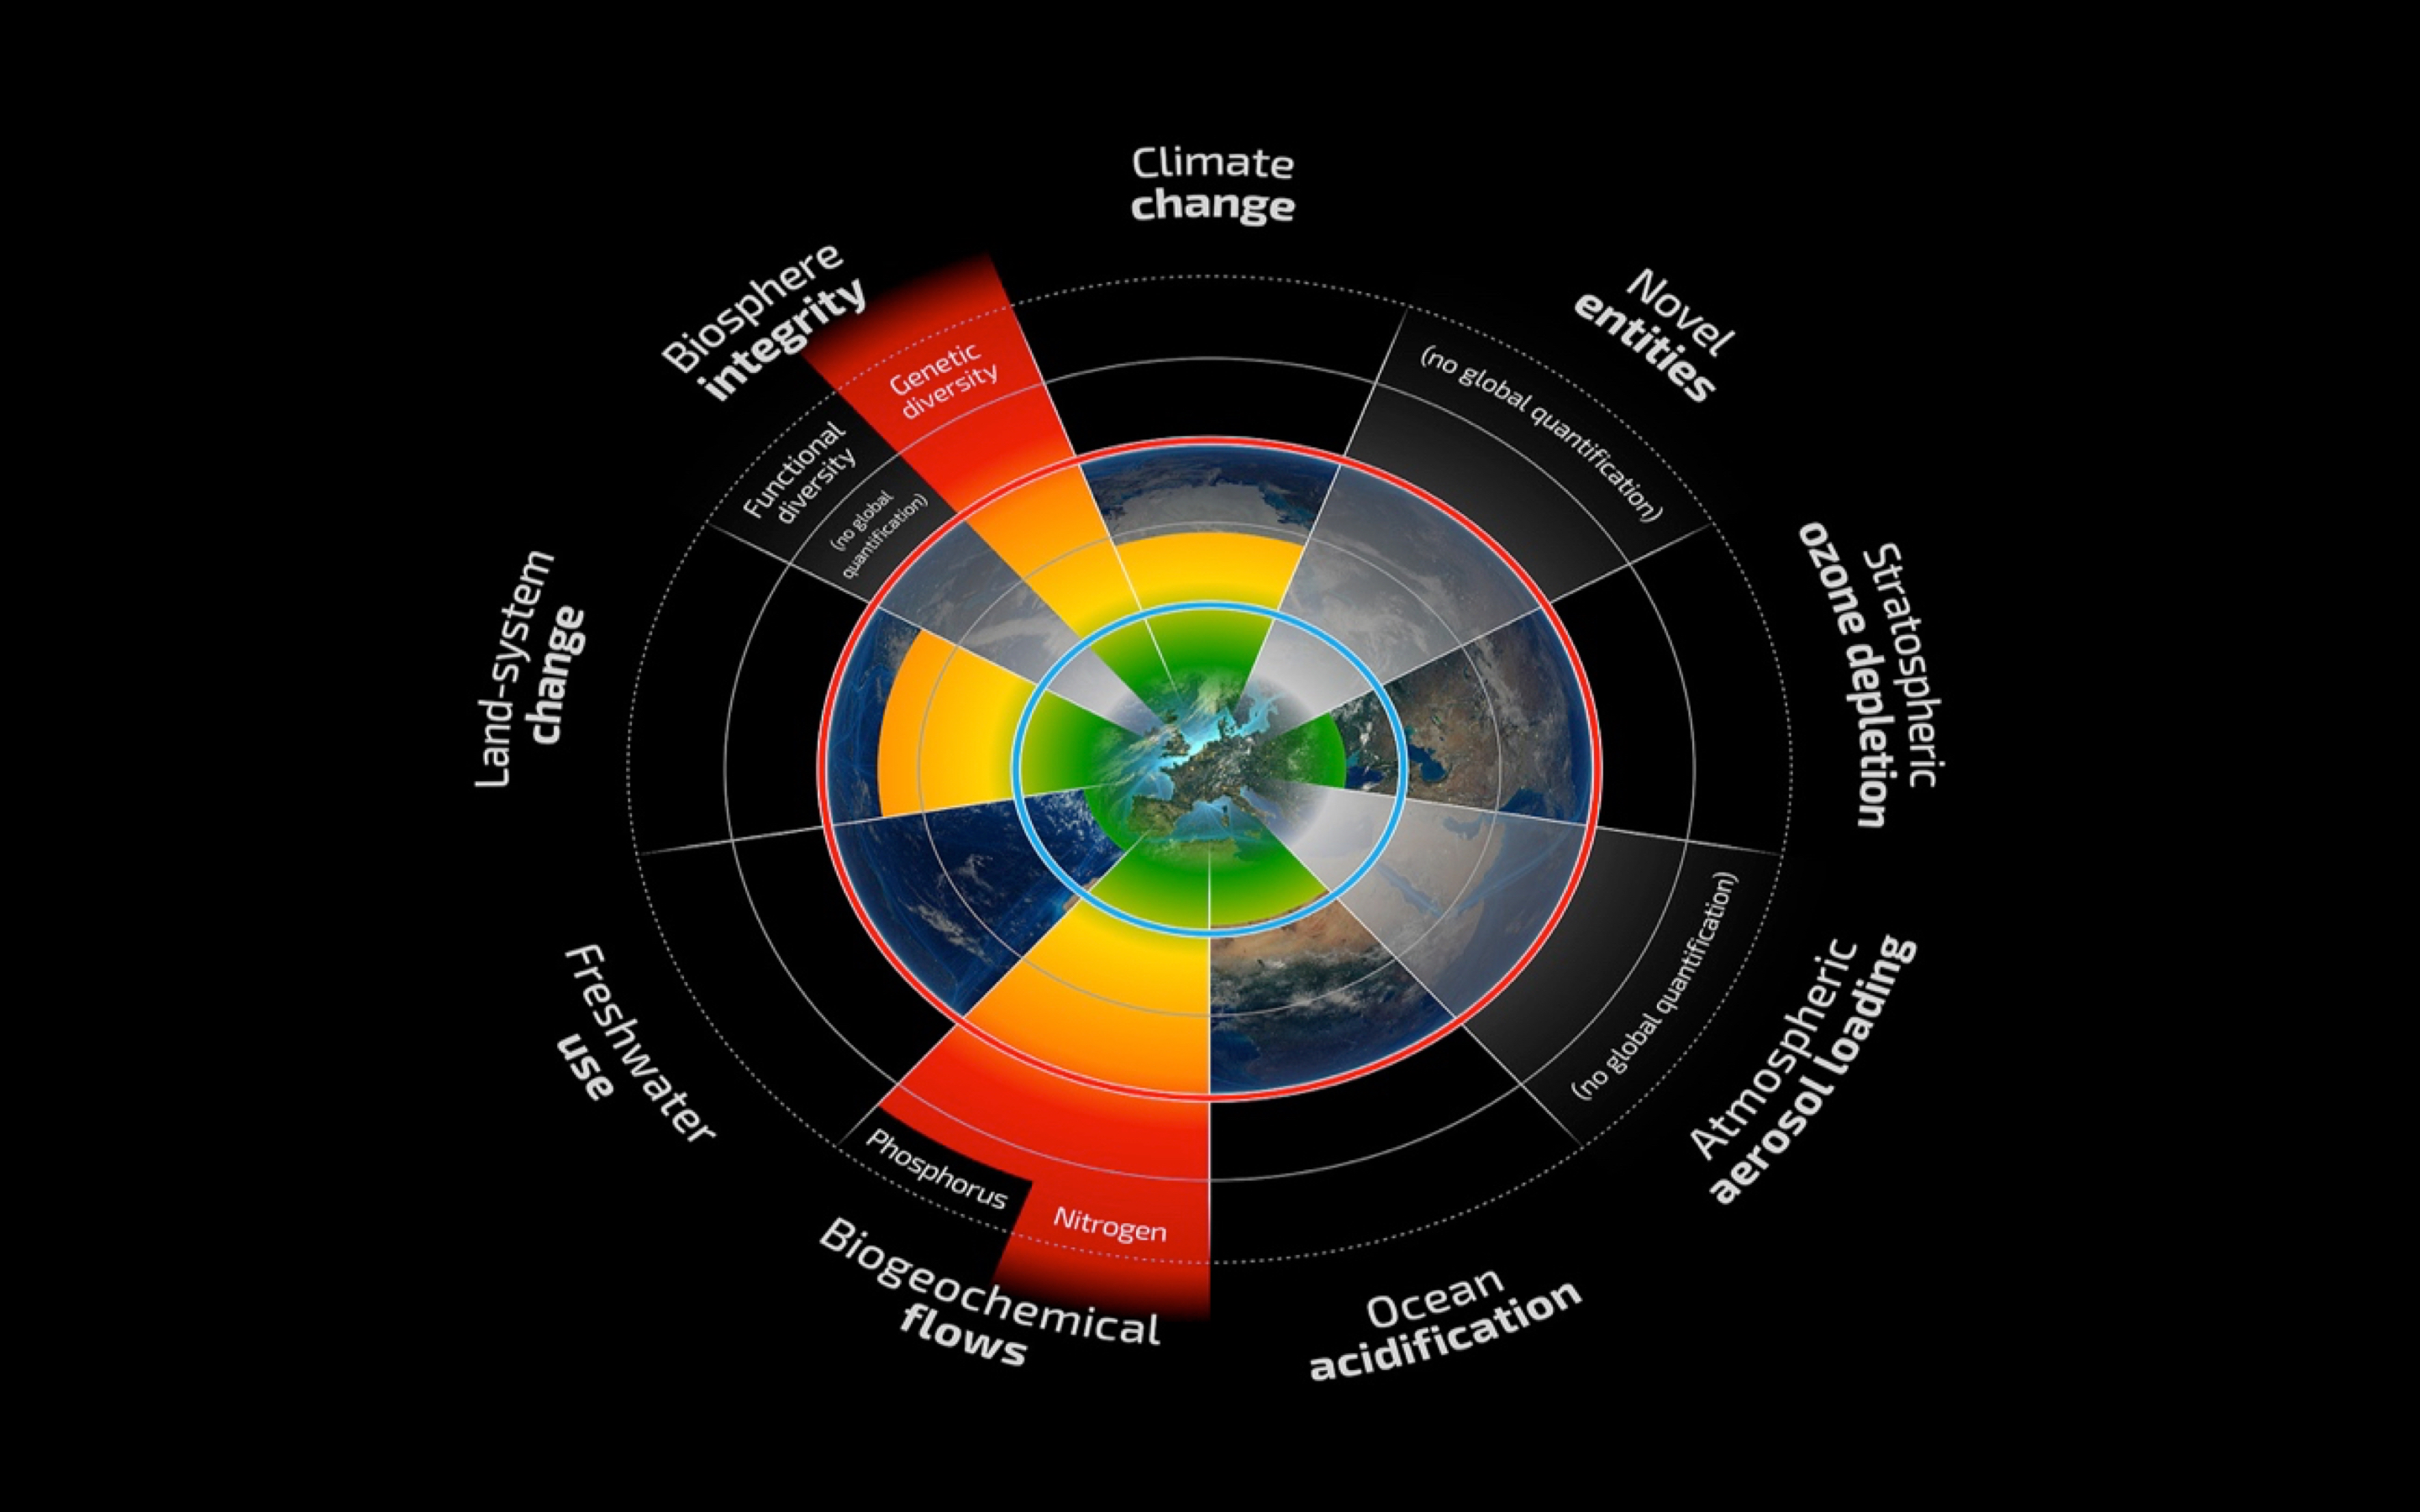 The planetary boundaries framework